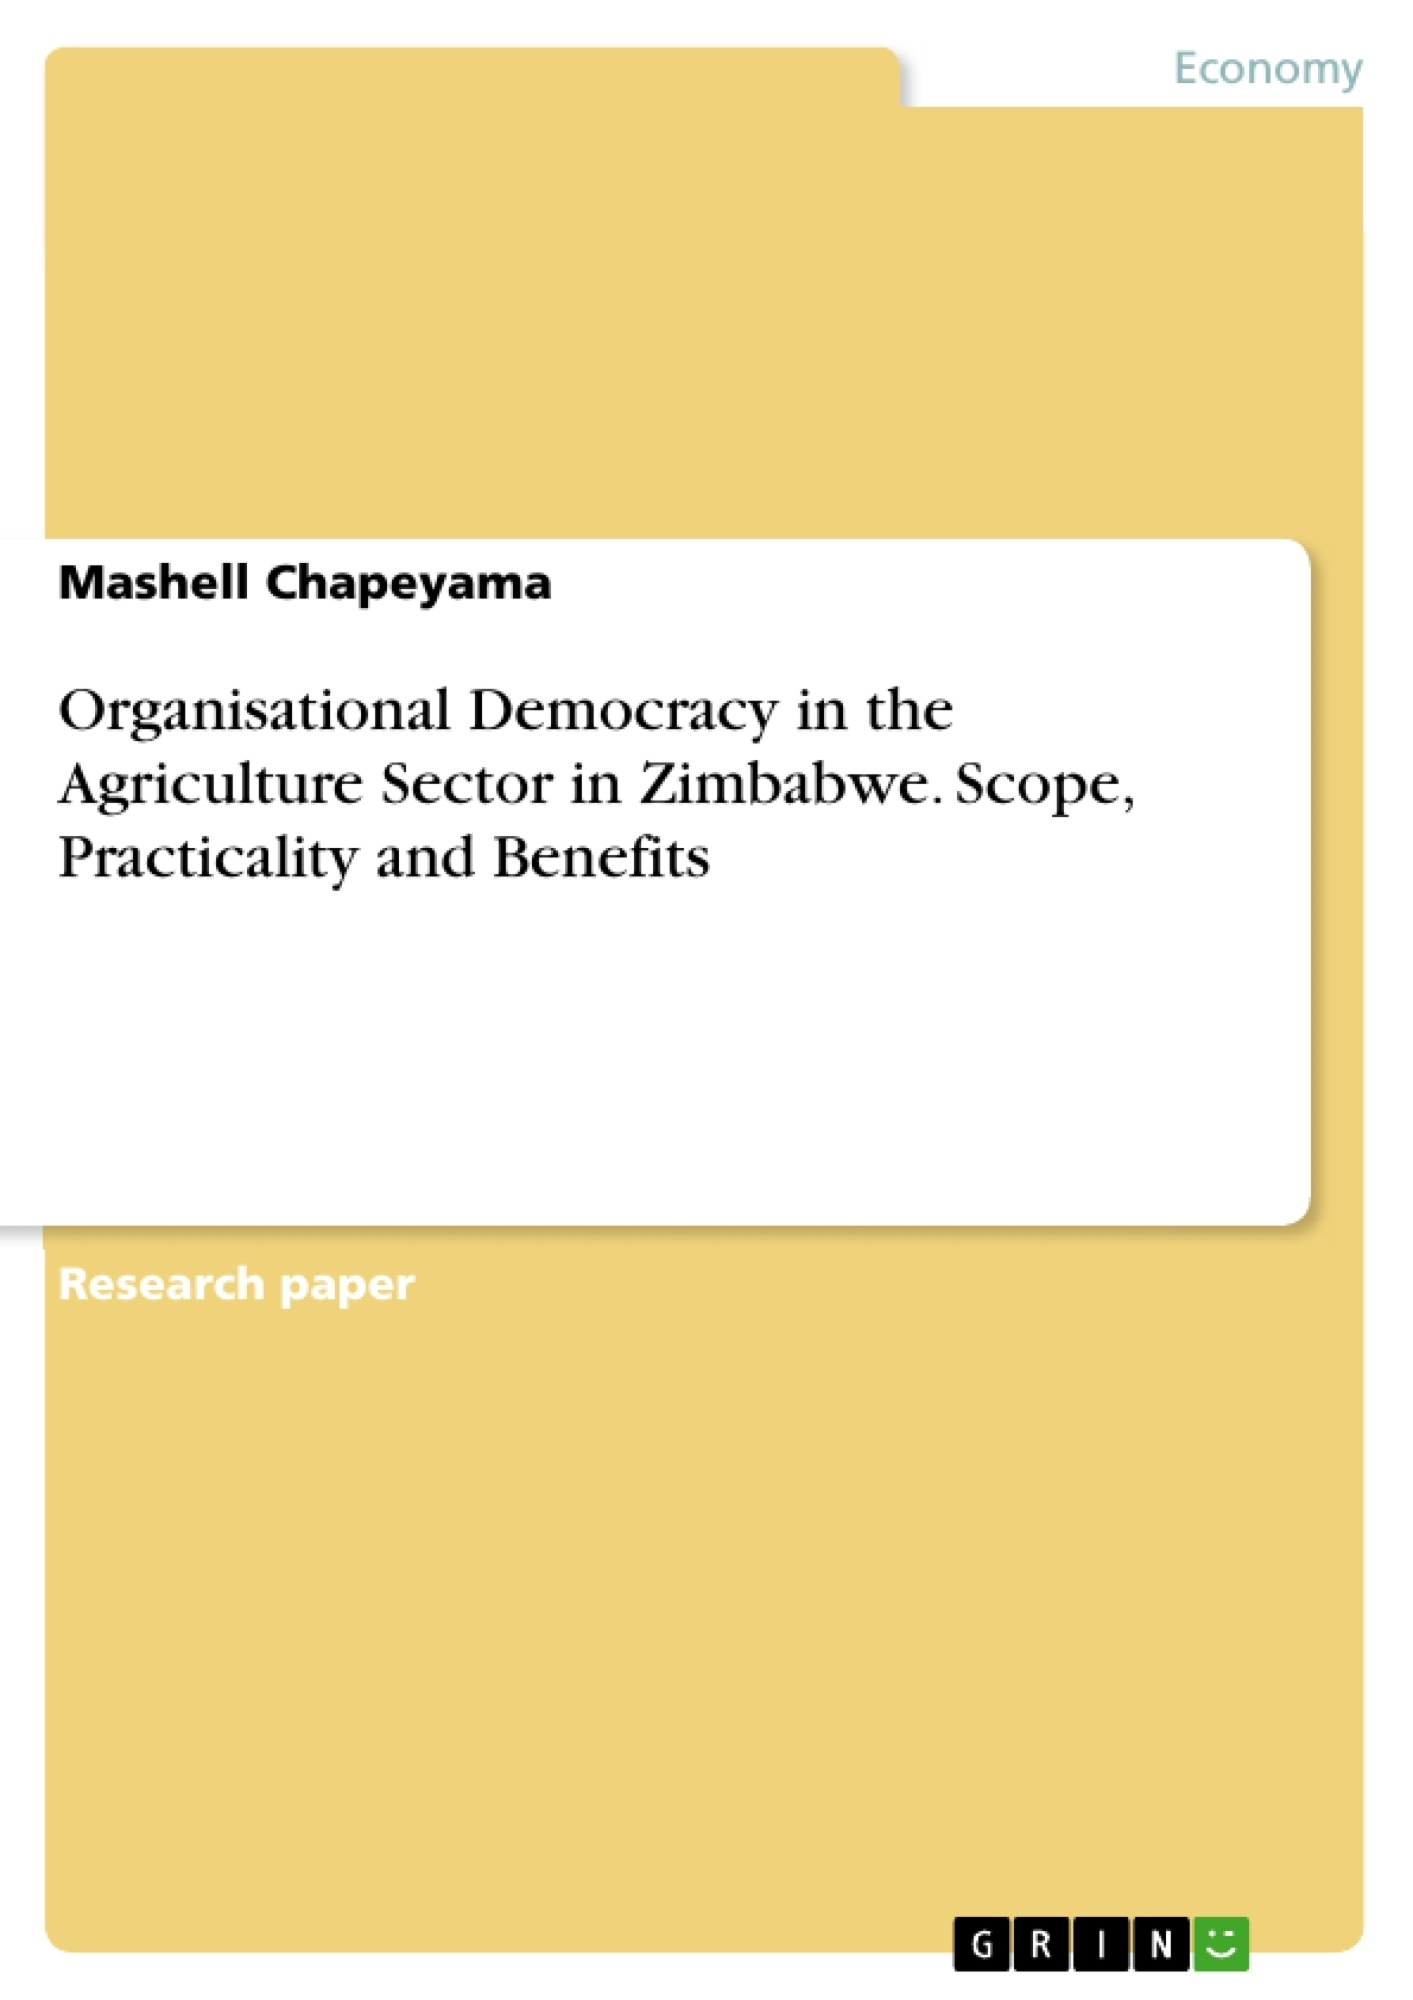 Title: Organisational Democracy in the Agriculture Sector in Zimbabwe. Scope, Practicality and Benefits